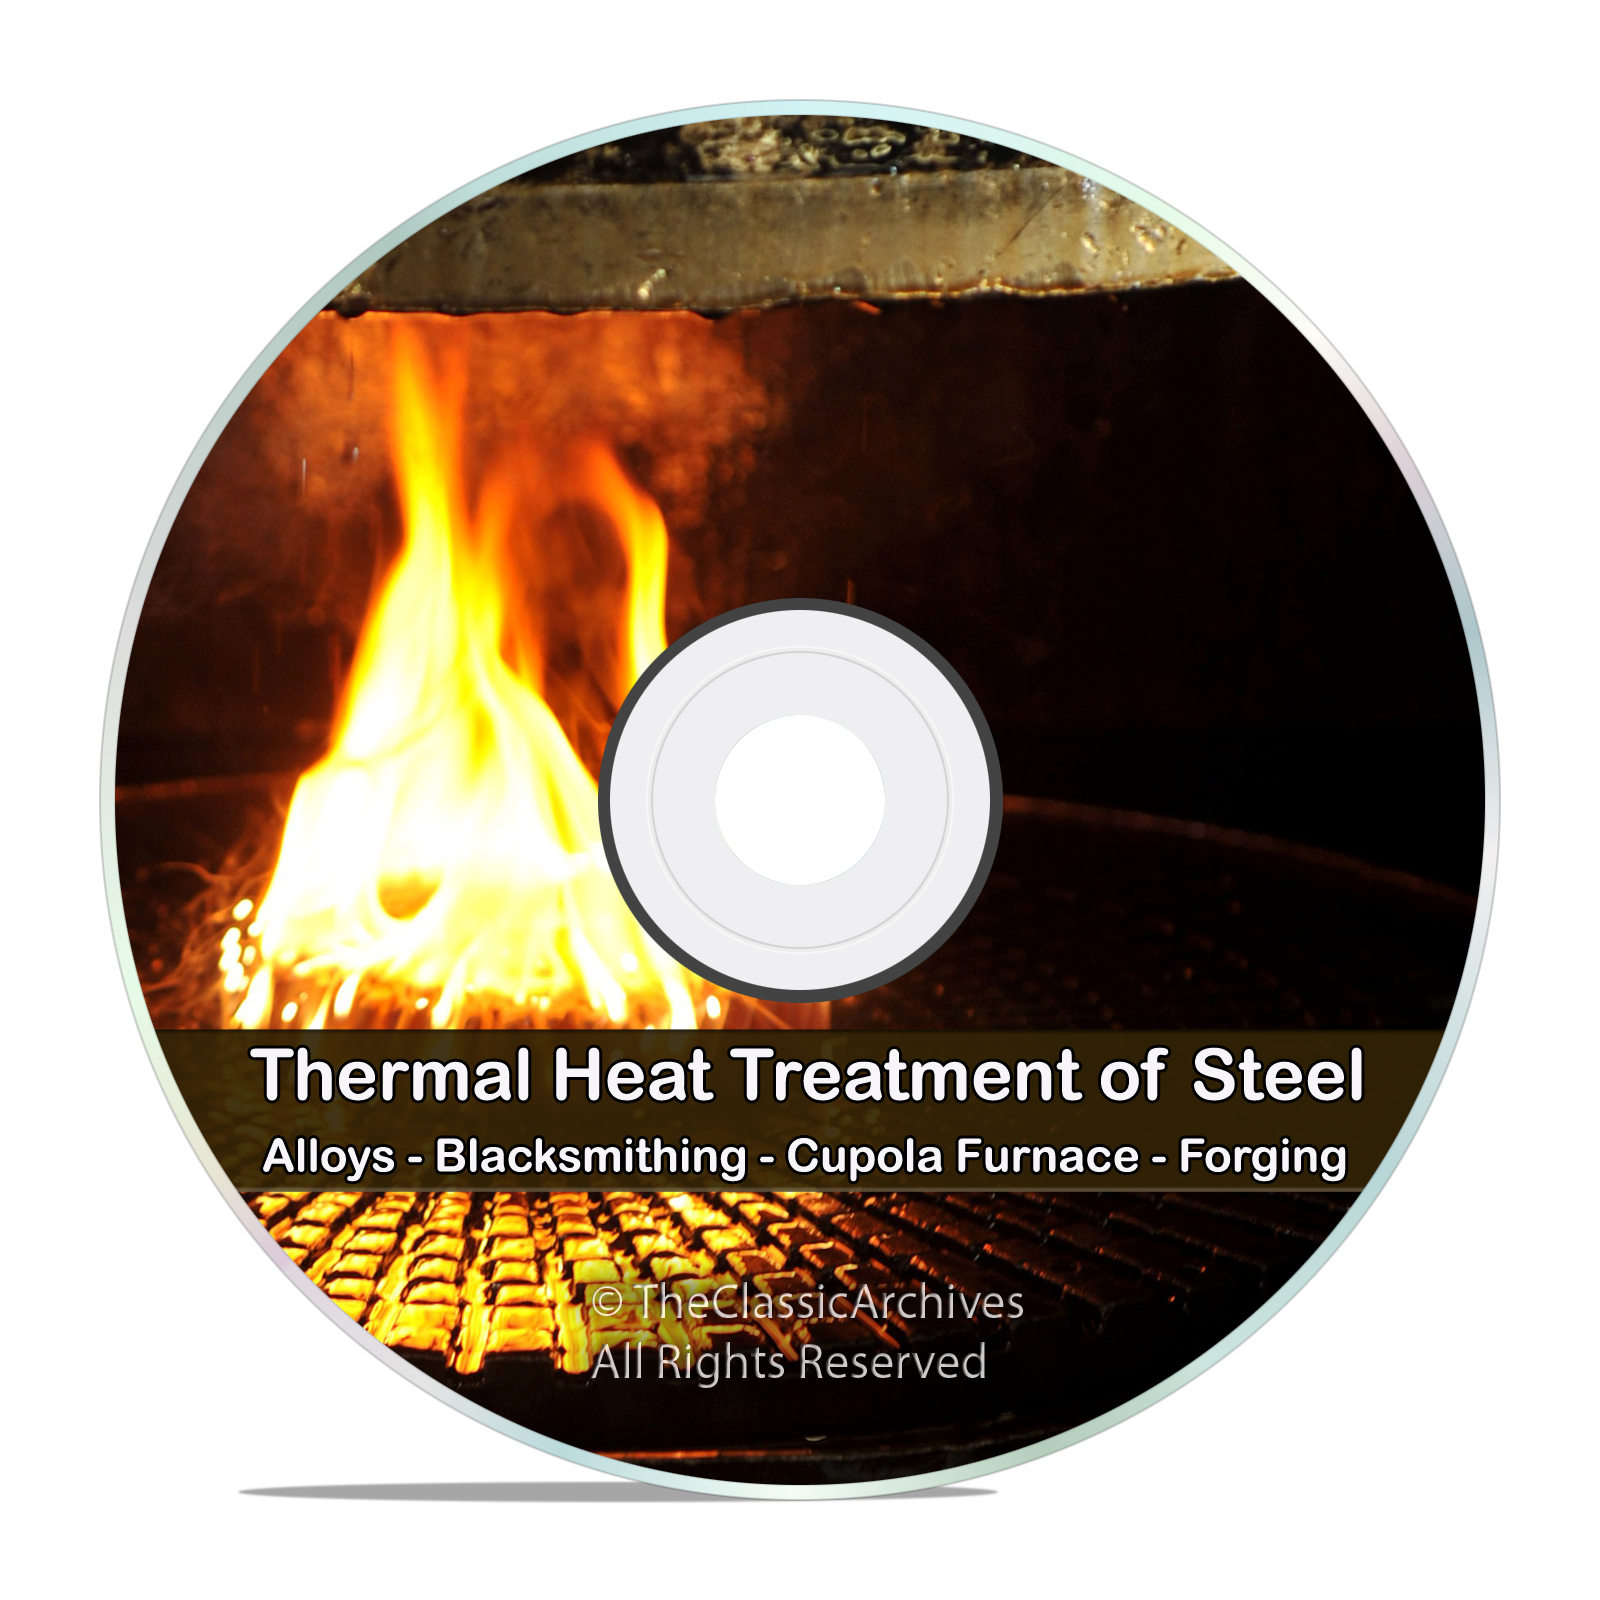 Heat Treatment of Steel, Thermal, Forge, Blacksmithing, Blast Furnace DVD